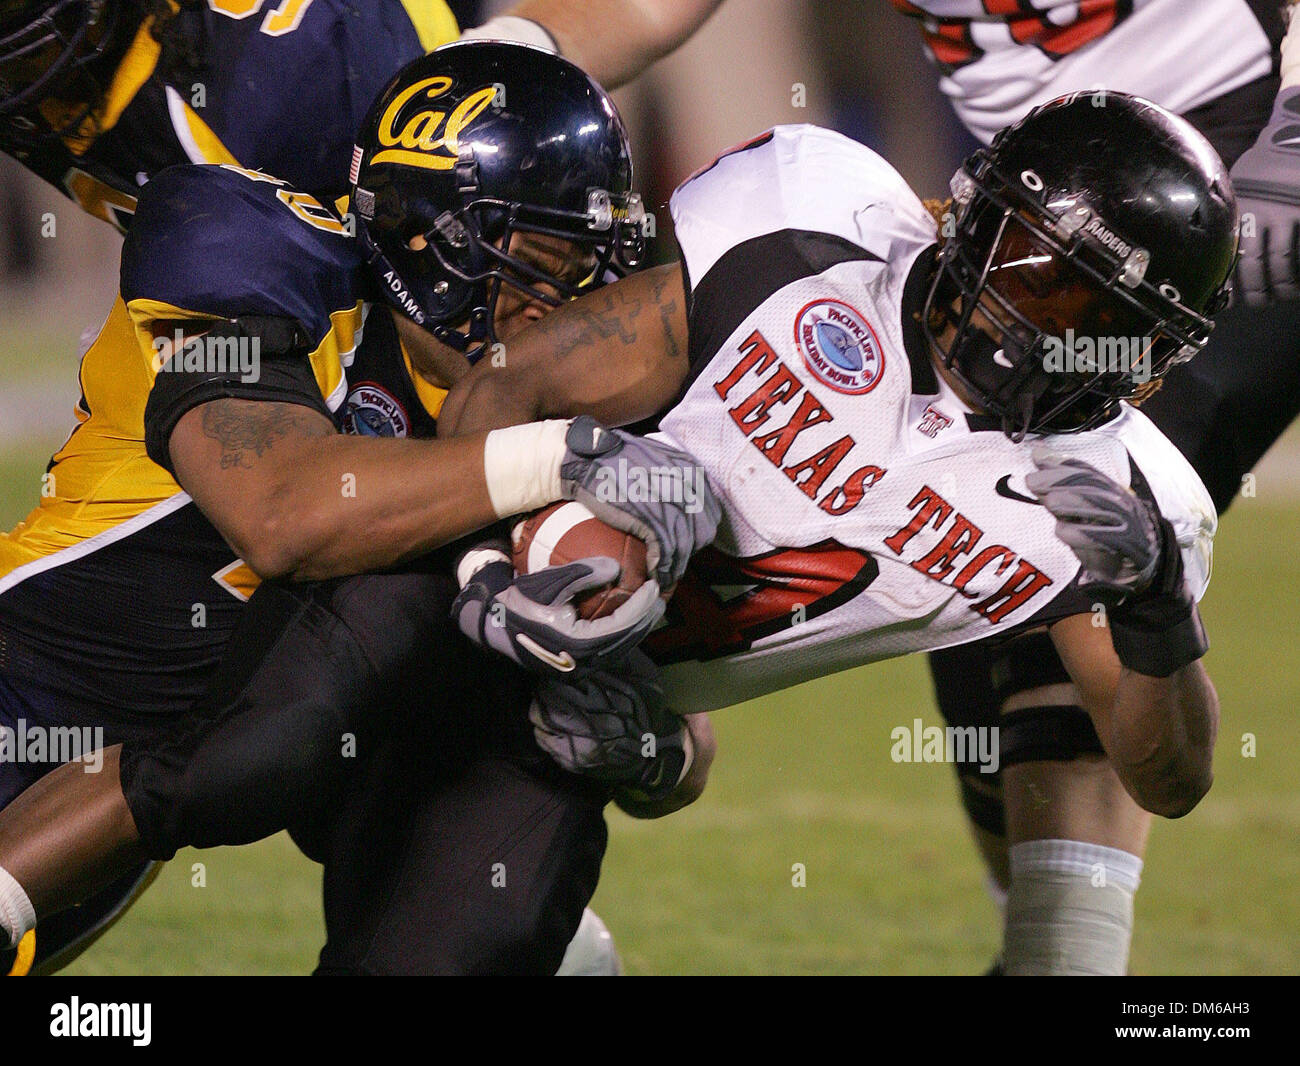 Dec 30, 2004; San Diego, CA, USA; NCAA College Football (Texas Tech 45, California 31) Texas Tech's JOHNNIE MACK pushes forward Thursday night Dec 30, 2004 in San Diego during the Holiday Bowl as Cal's Wendell Hunter tries to stop him. - Stock Image